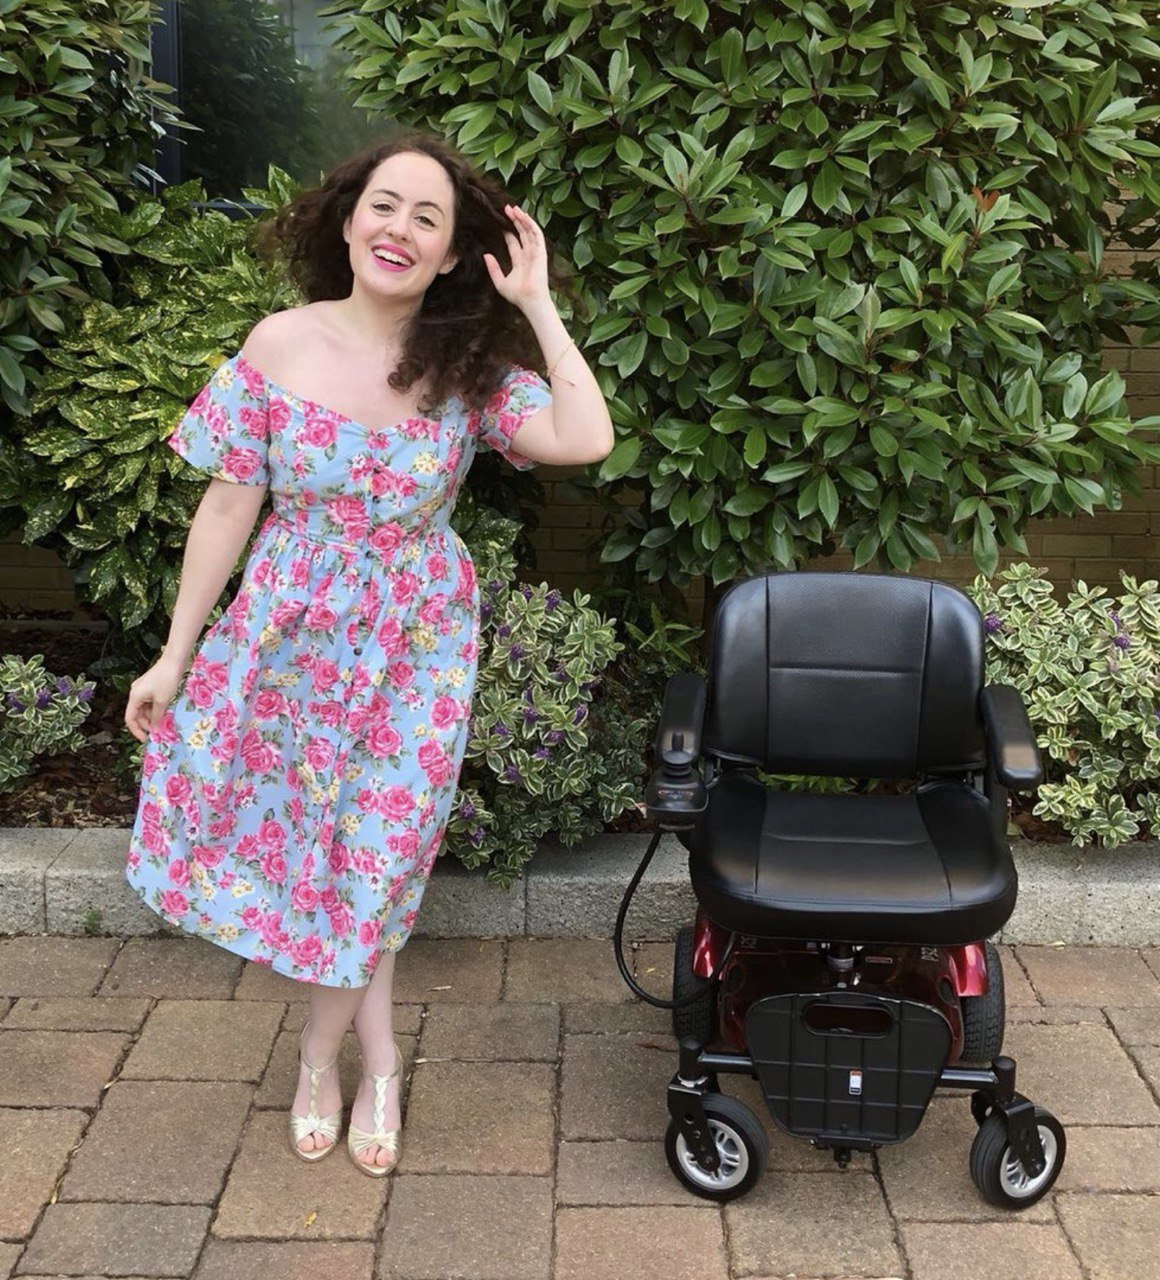 natasha stood next to powerchair, wearing pink flowery dress and laughing